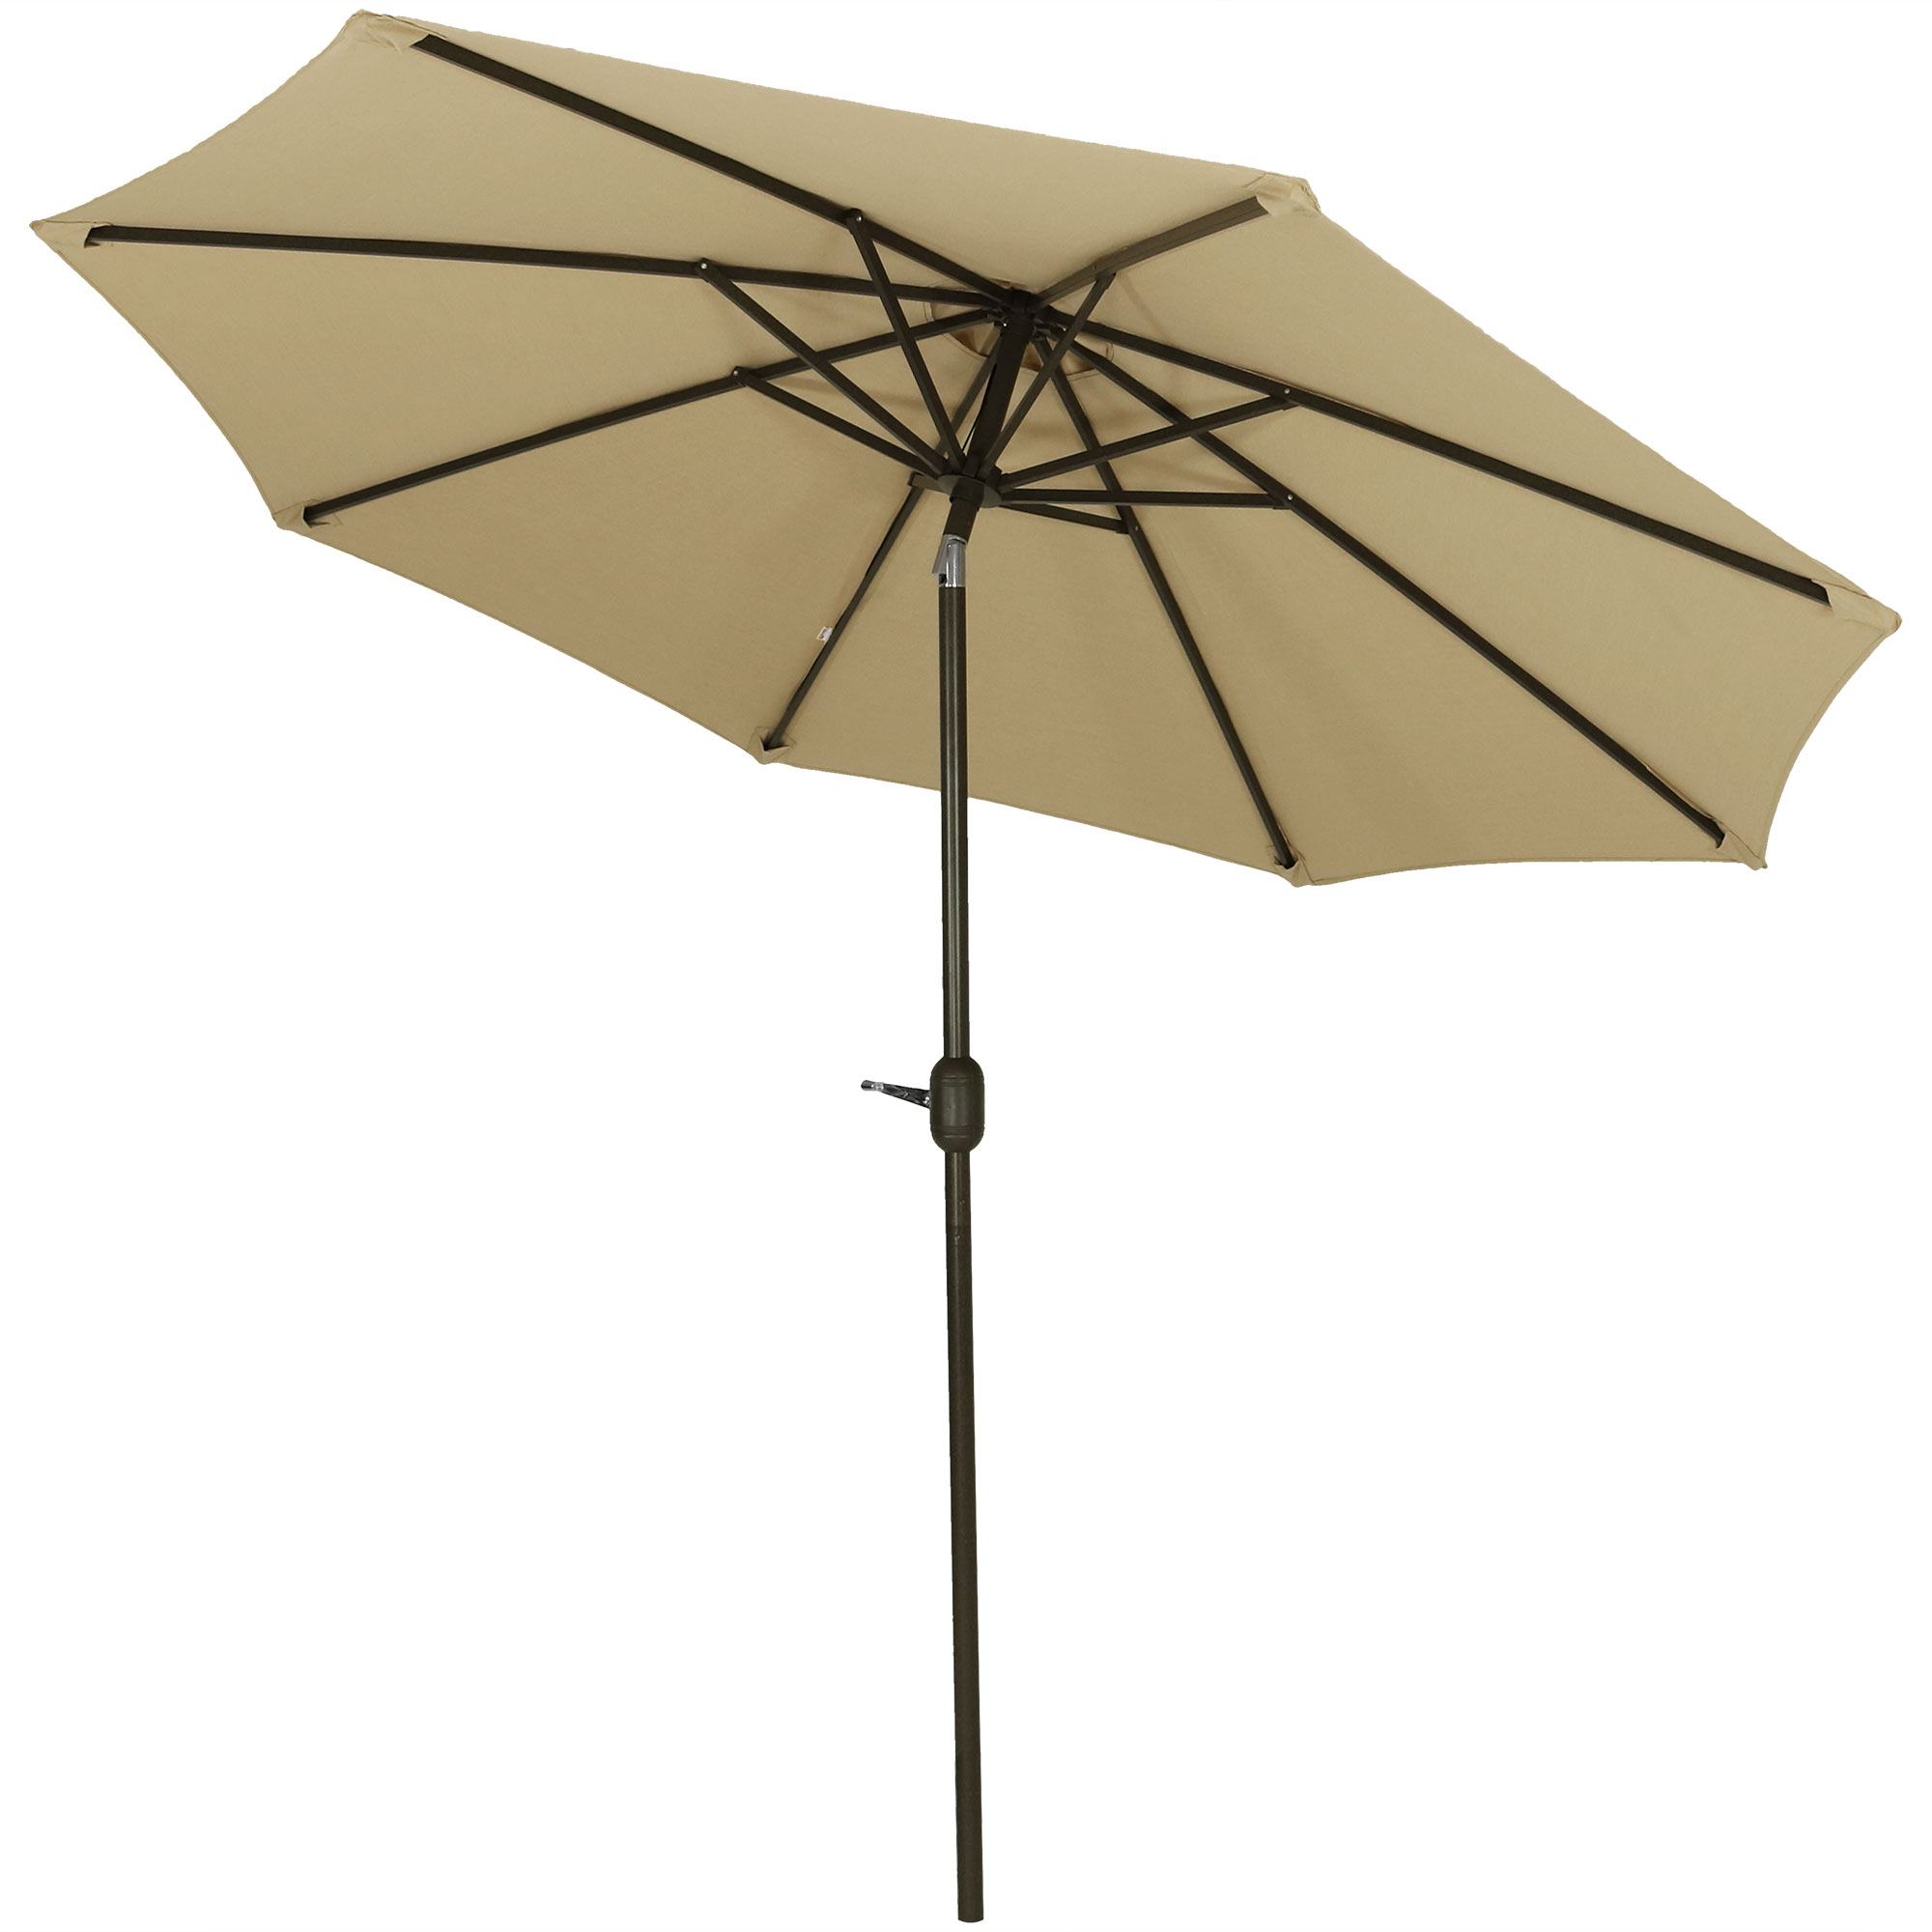 Julian Market Umbrellas Throughout Most Popular Sunnydaze Sunbrella Patio Umbrella With Auto Tilt And Crank, 9 Foot Outdoor  Market Umbrella, Rust Resistant Aluminum, Sunbrella Beige (View 10 of 20)